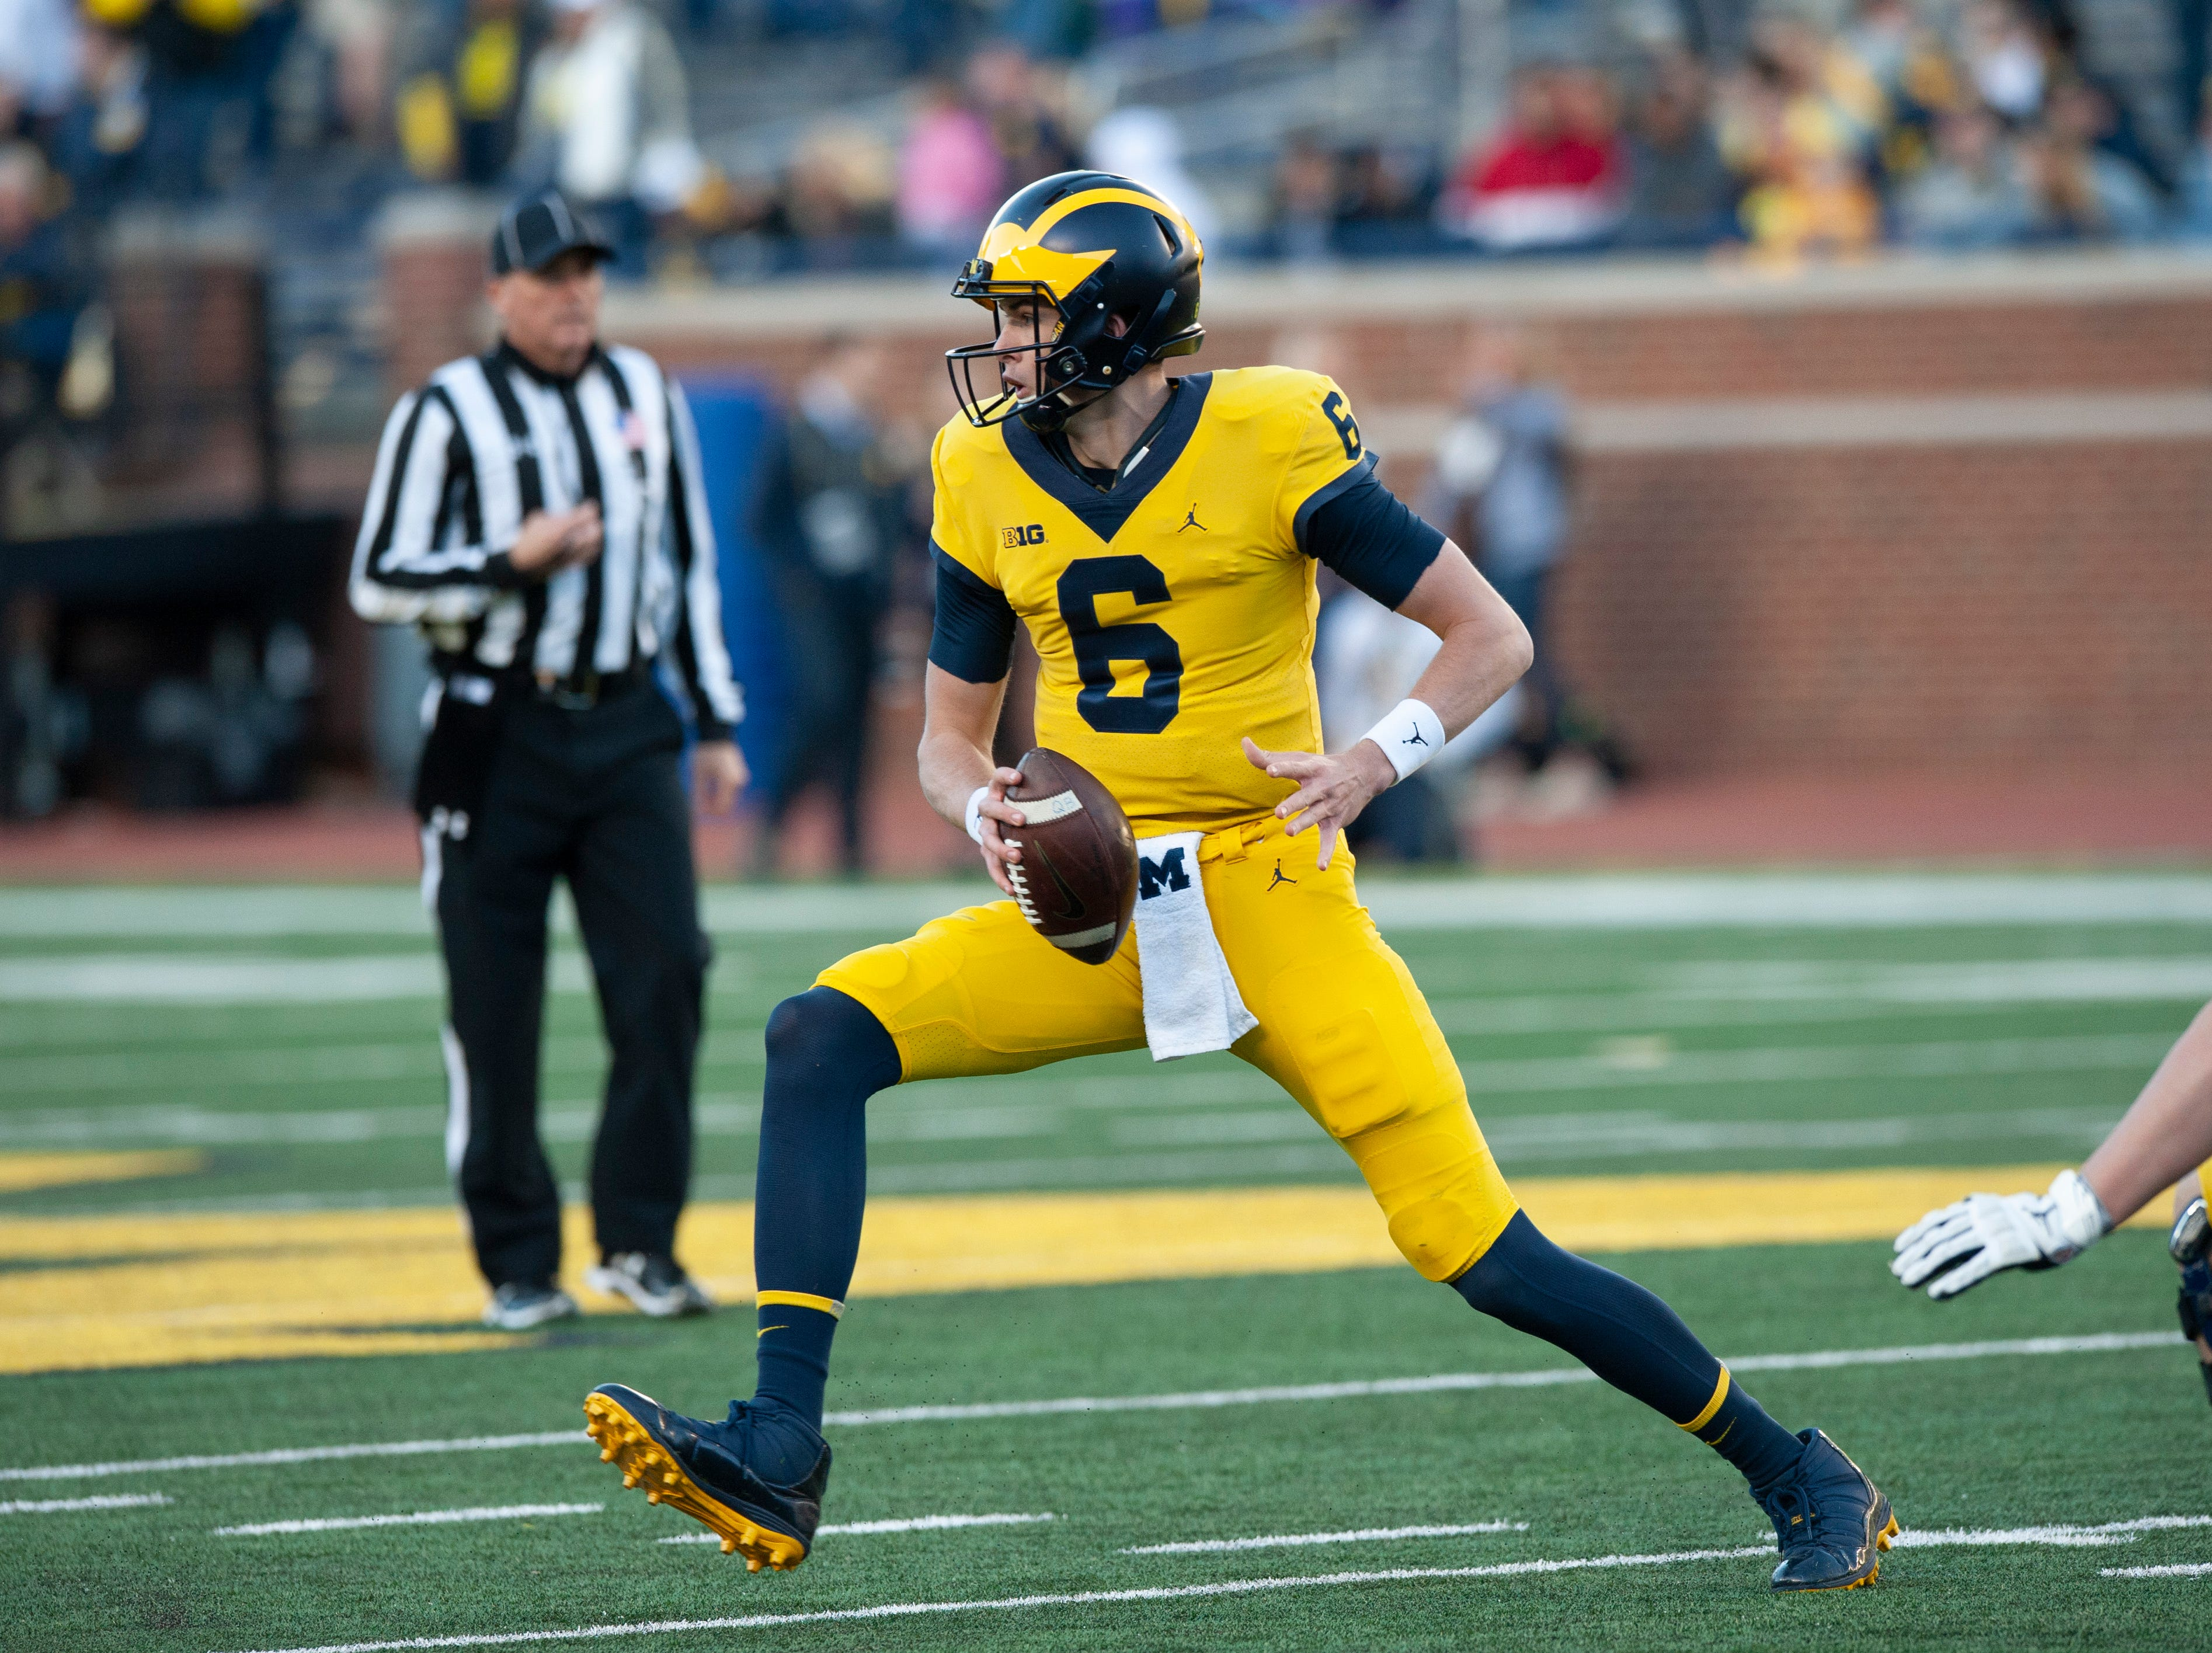 Michigan QB Michael Sessa gets ready to pitch the football in the backfield.